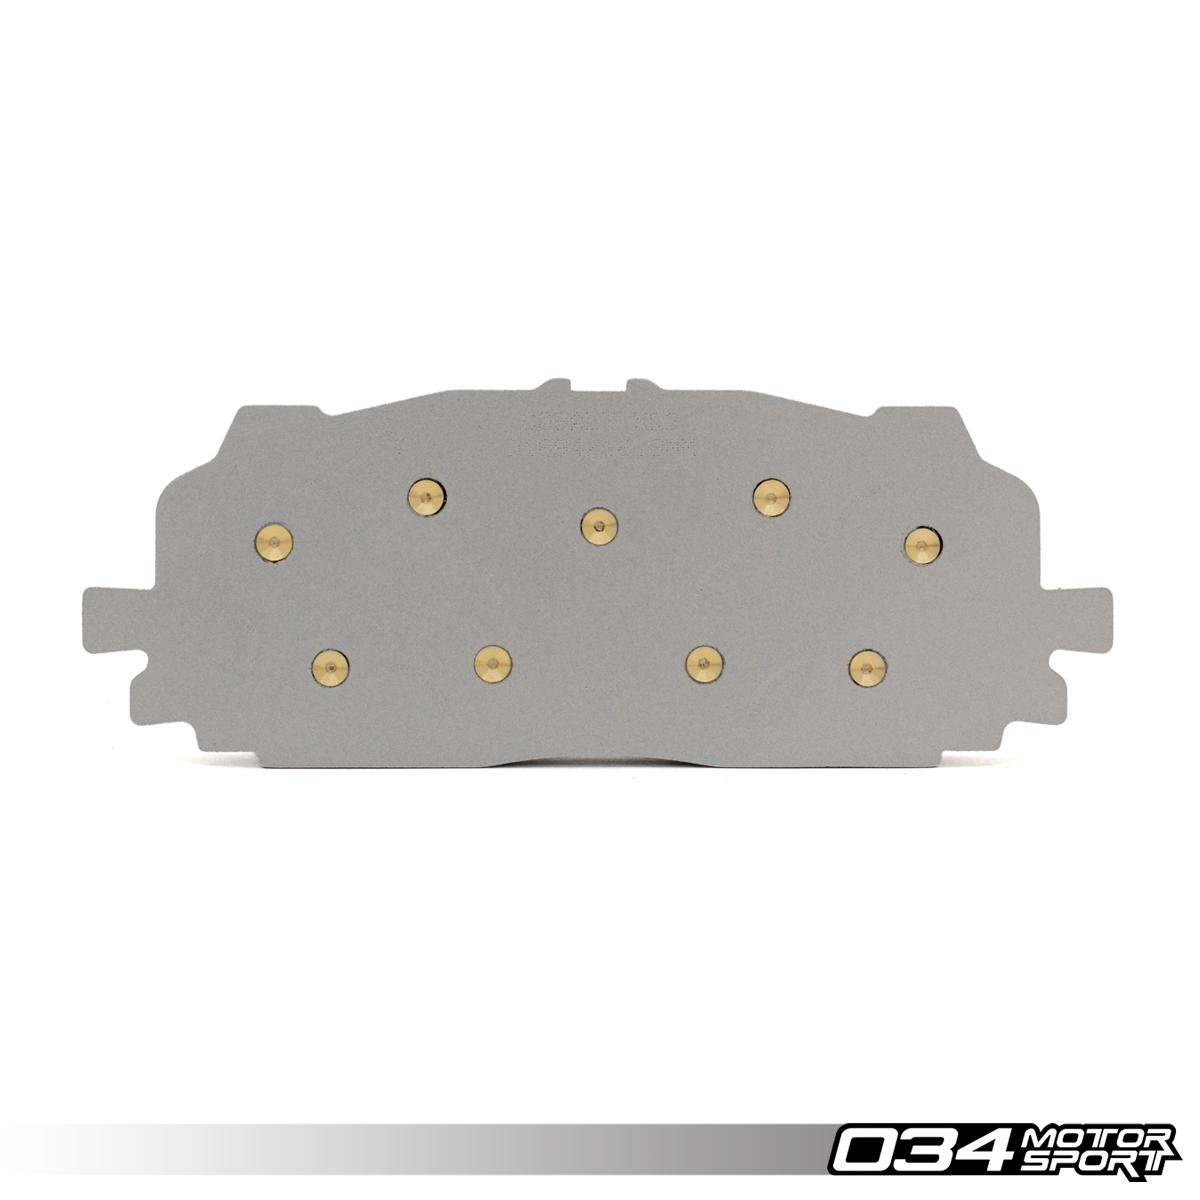 Cobalt Friction Brake Pads Now Available For B9 Audi